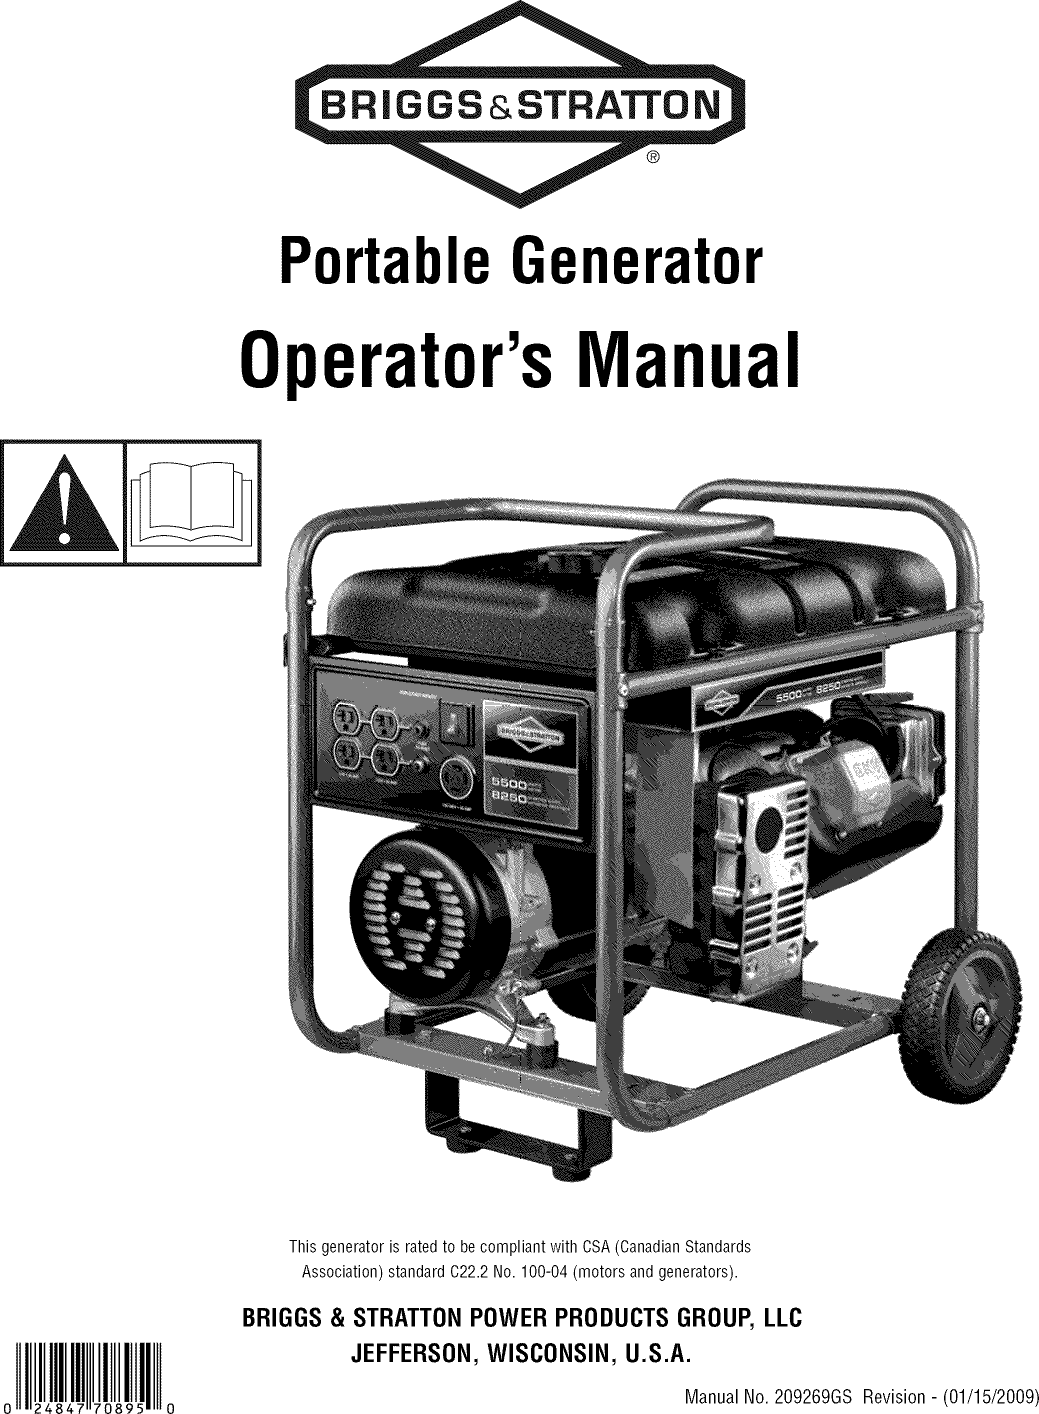 Briggs & Stratton 030439 User Manual GENERATOR Manuals And